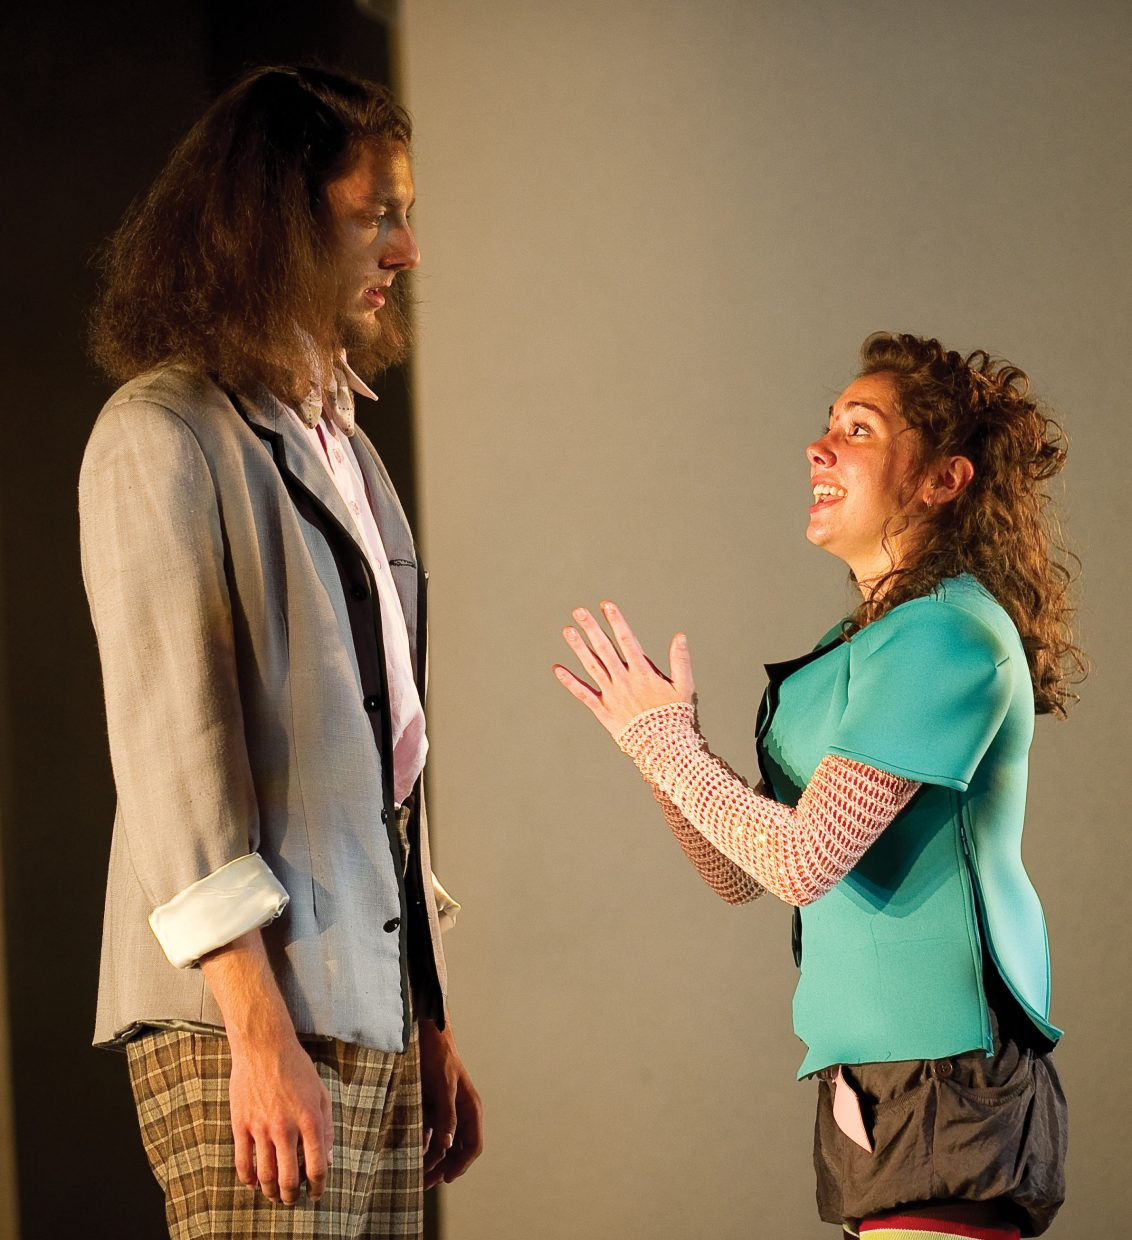 Maria Slye (Zaka) pleads with James Cowan (Clar) in a scene from the Perry-Mansfield Performing Arts School and Camp 's production of  Out of Joint. The show will be part of the camps premieres tonight at 8 p.m. at the Julie Harris Theater.